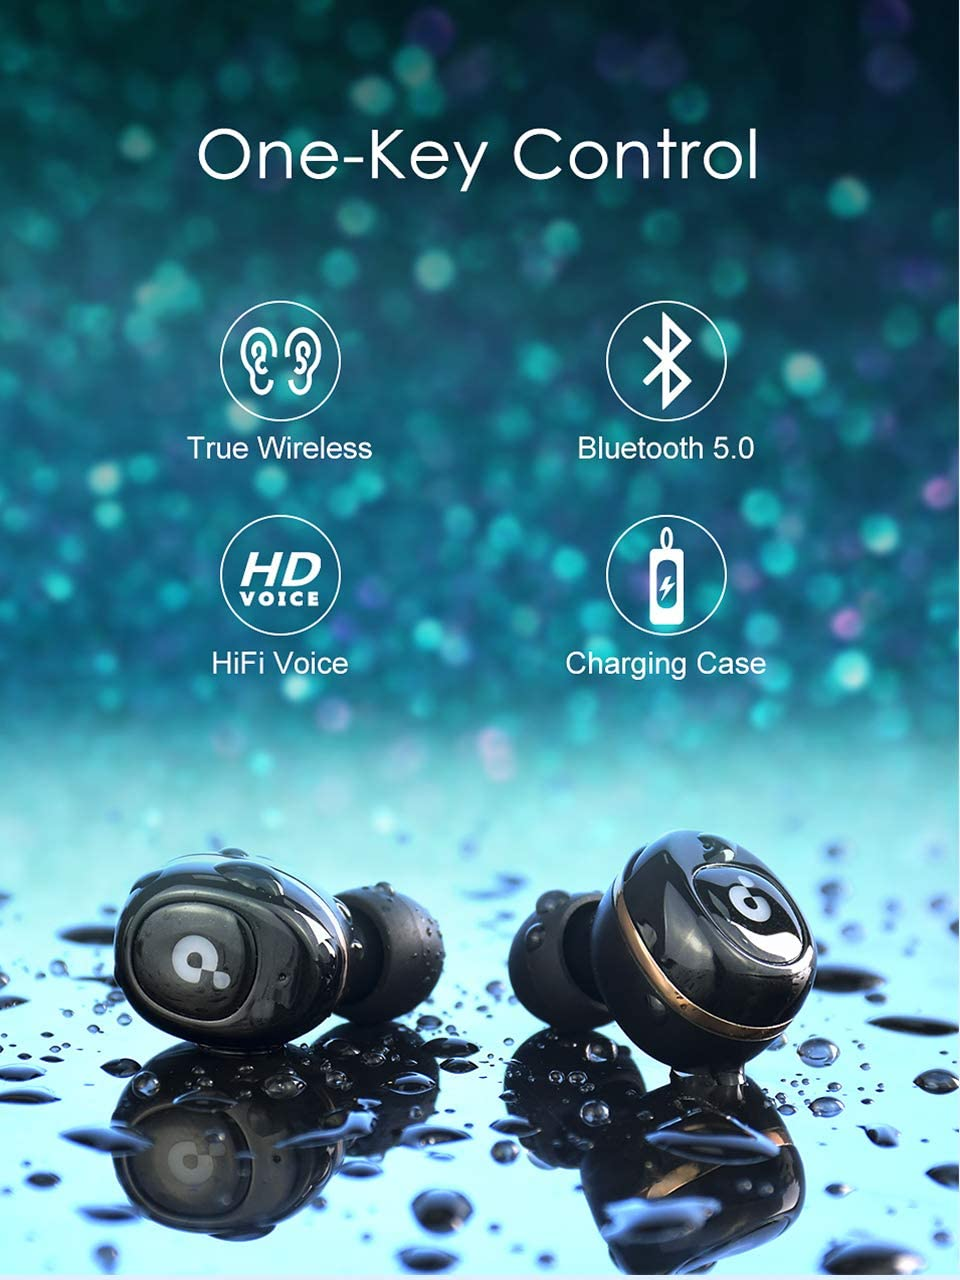 True Wireless Earbuds, Update Bluetooth Sport Earphone with Charging Case, Auto Power on Pairing, Stereo Headphone, IPX4 Waterproof, iOS Android Support, BlueWow A5 – Black